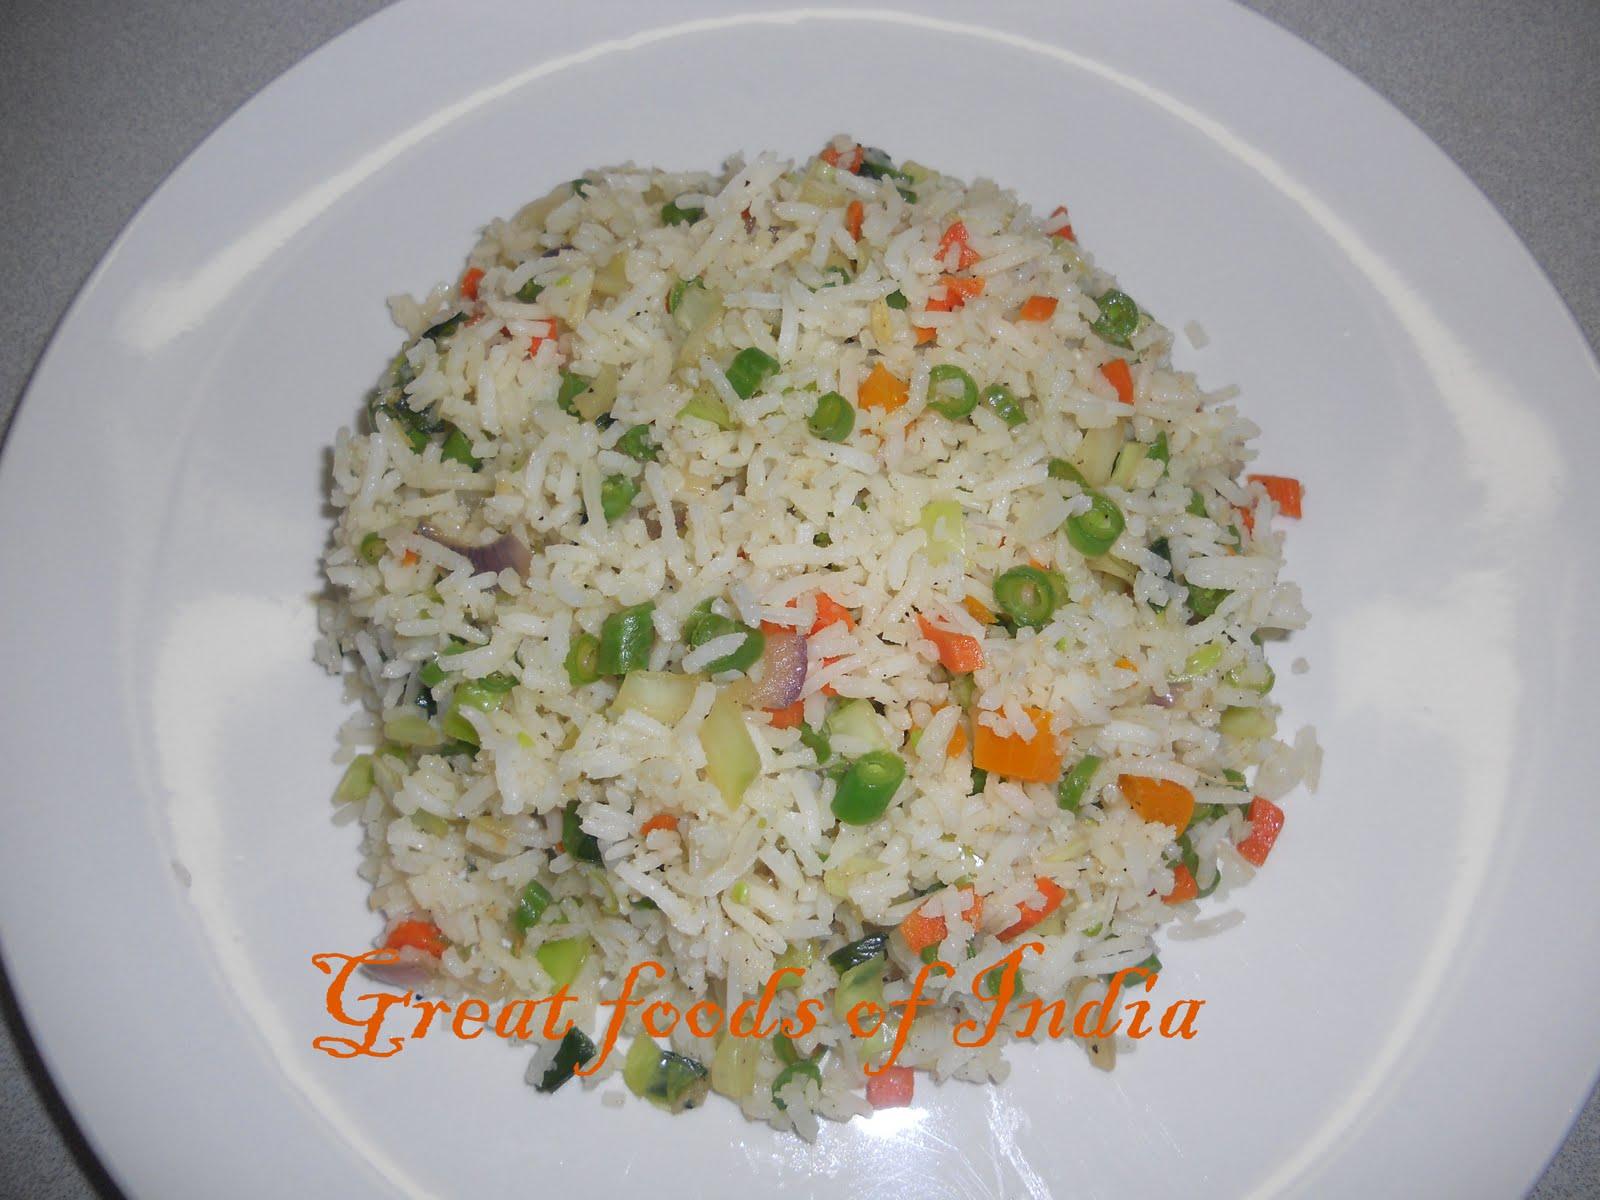 Great foods of India: Vegetable fried rice